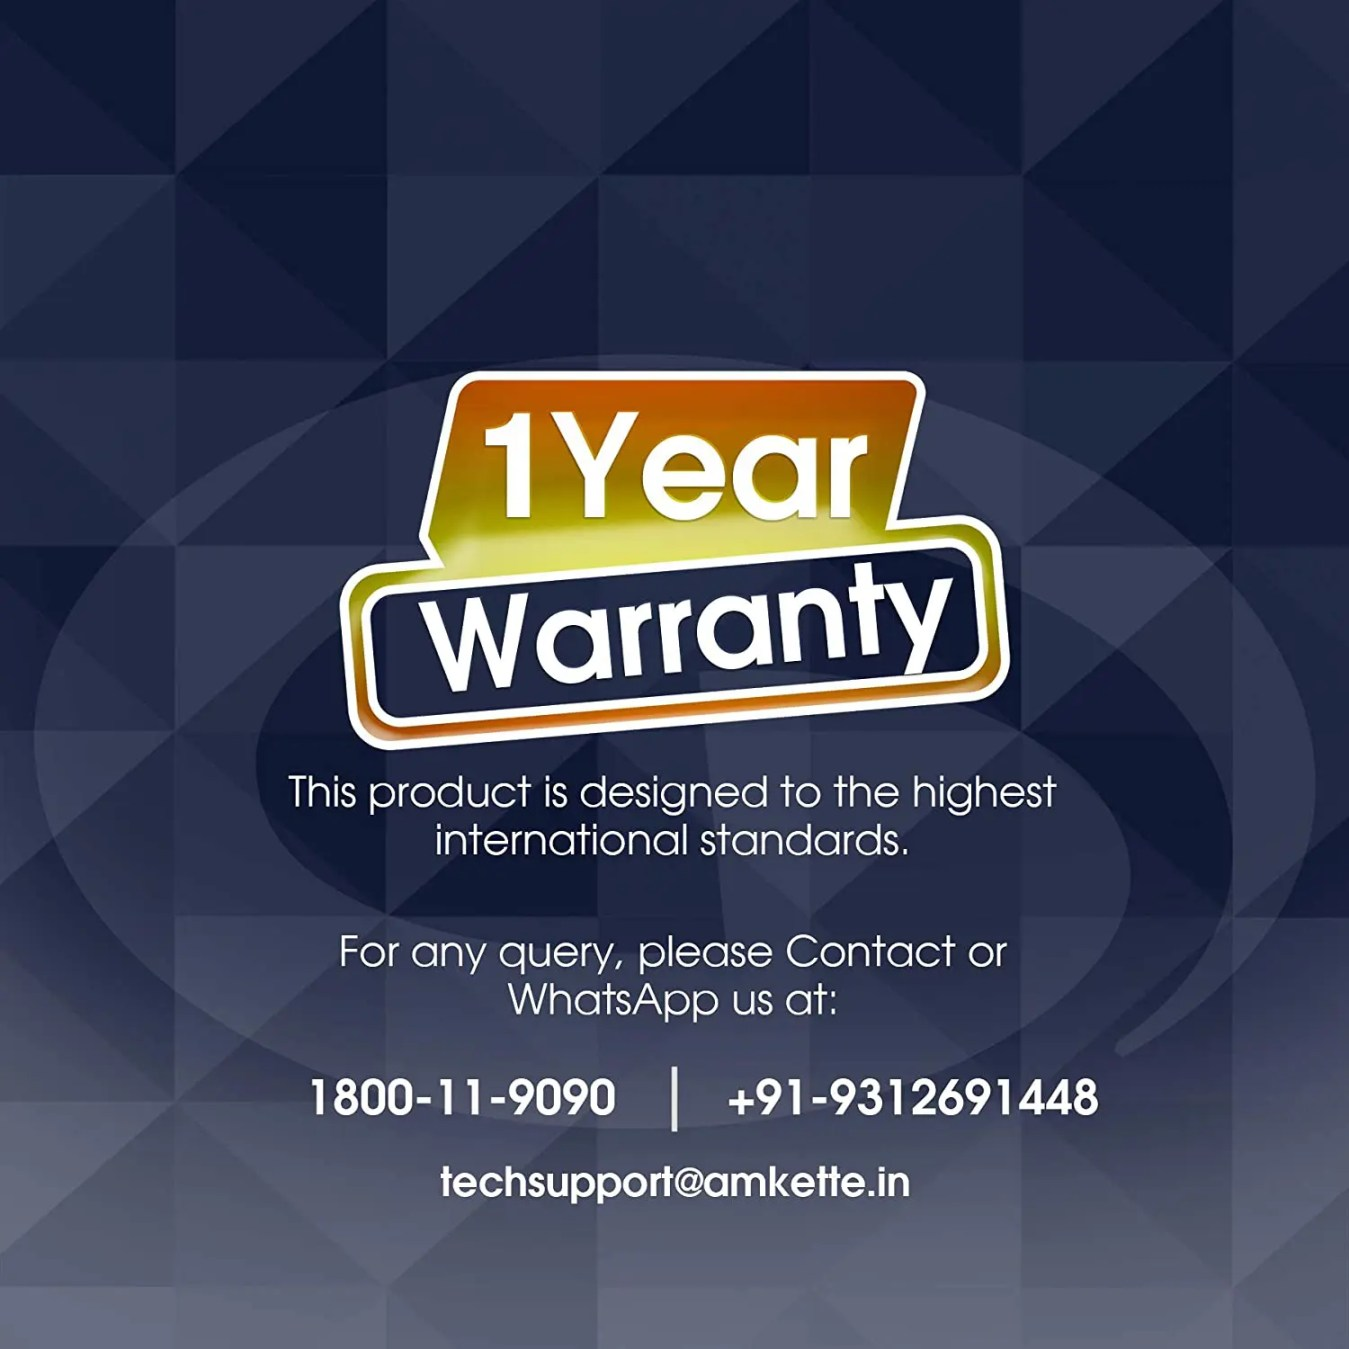 1year warranty card by amkette